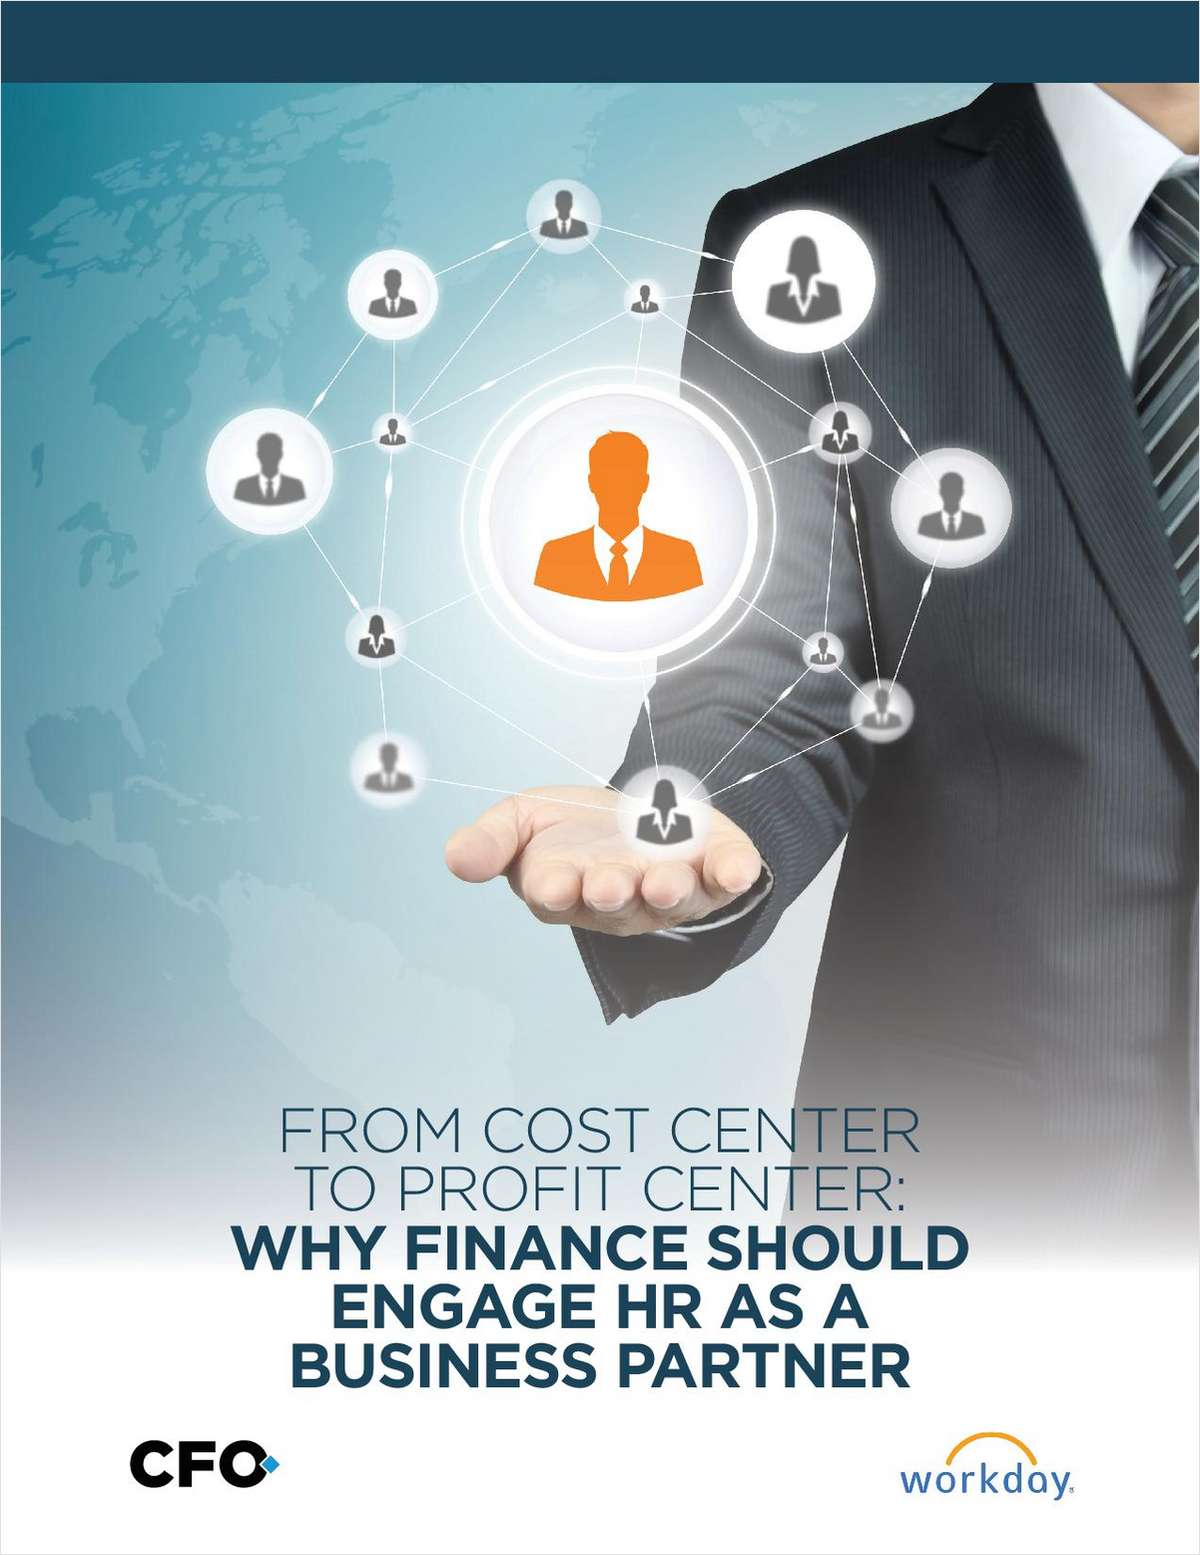 From Cost Center to Profit Center: Why Finance Should Engage HR as a Business Partner